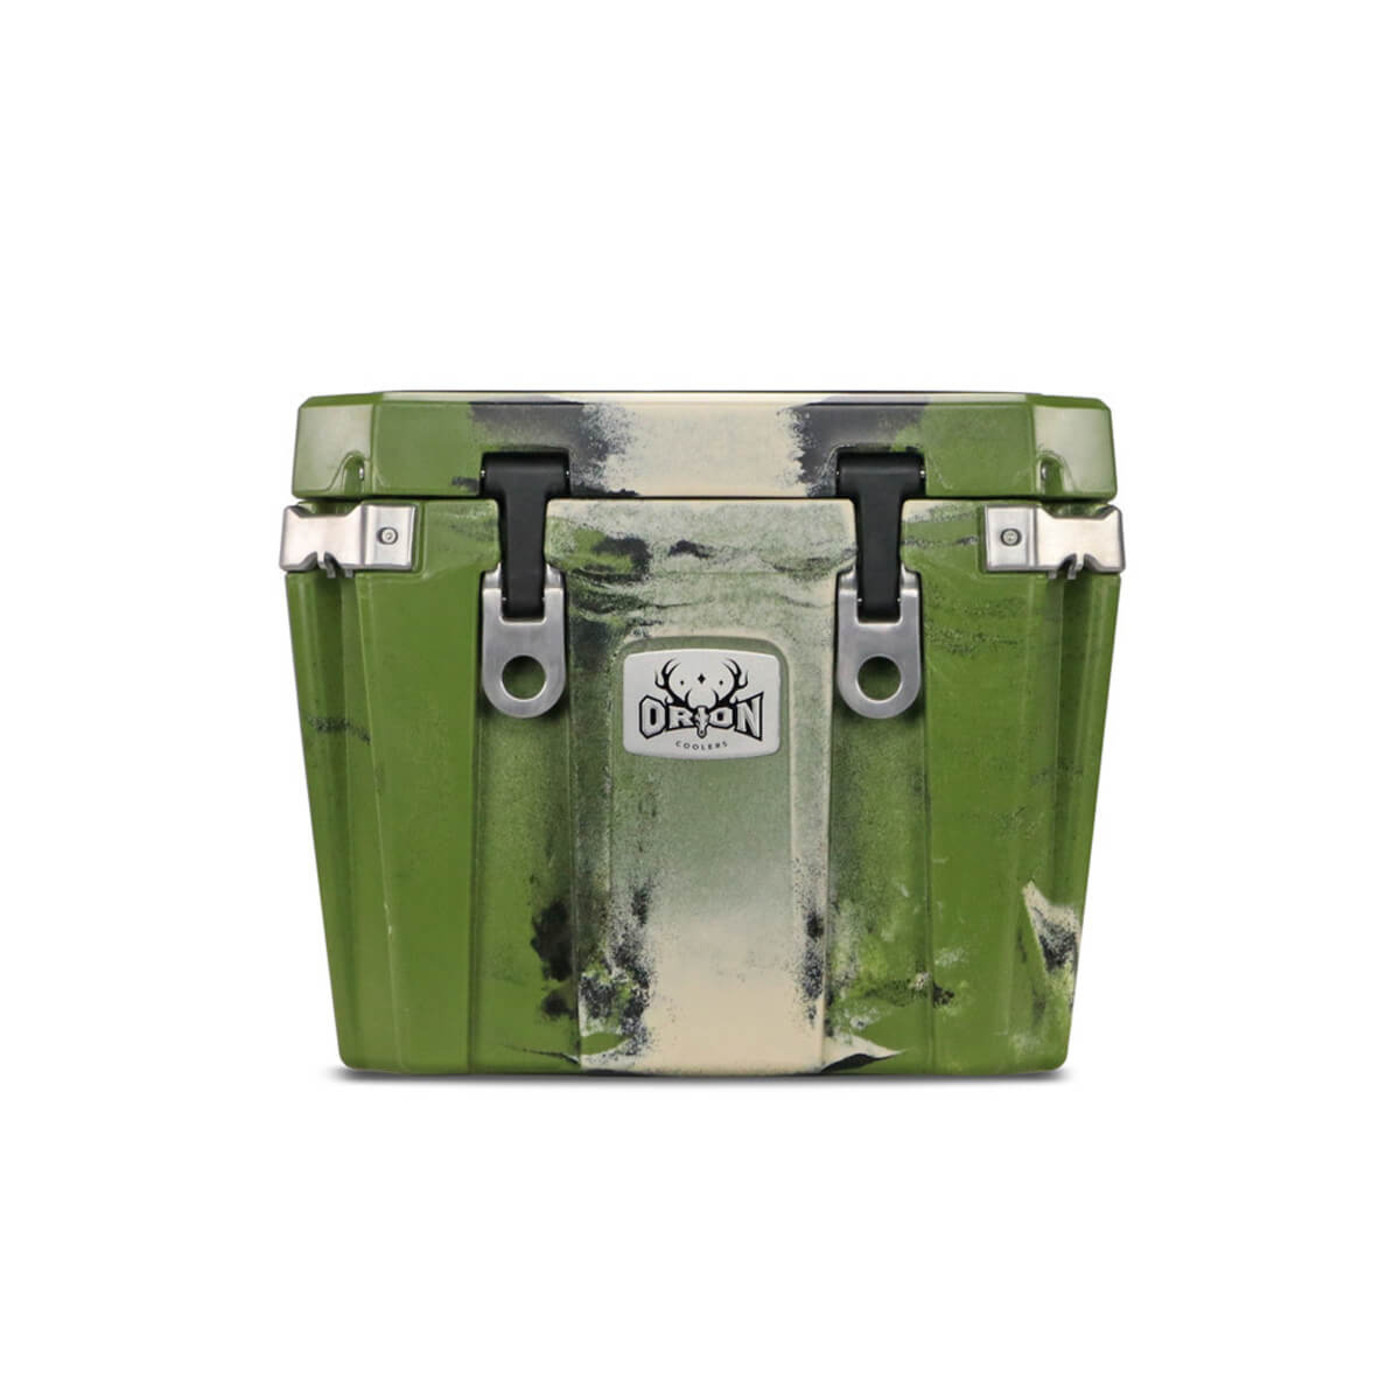 Orion 25 Cooler in Forest Camo Color